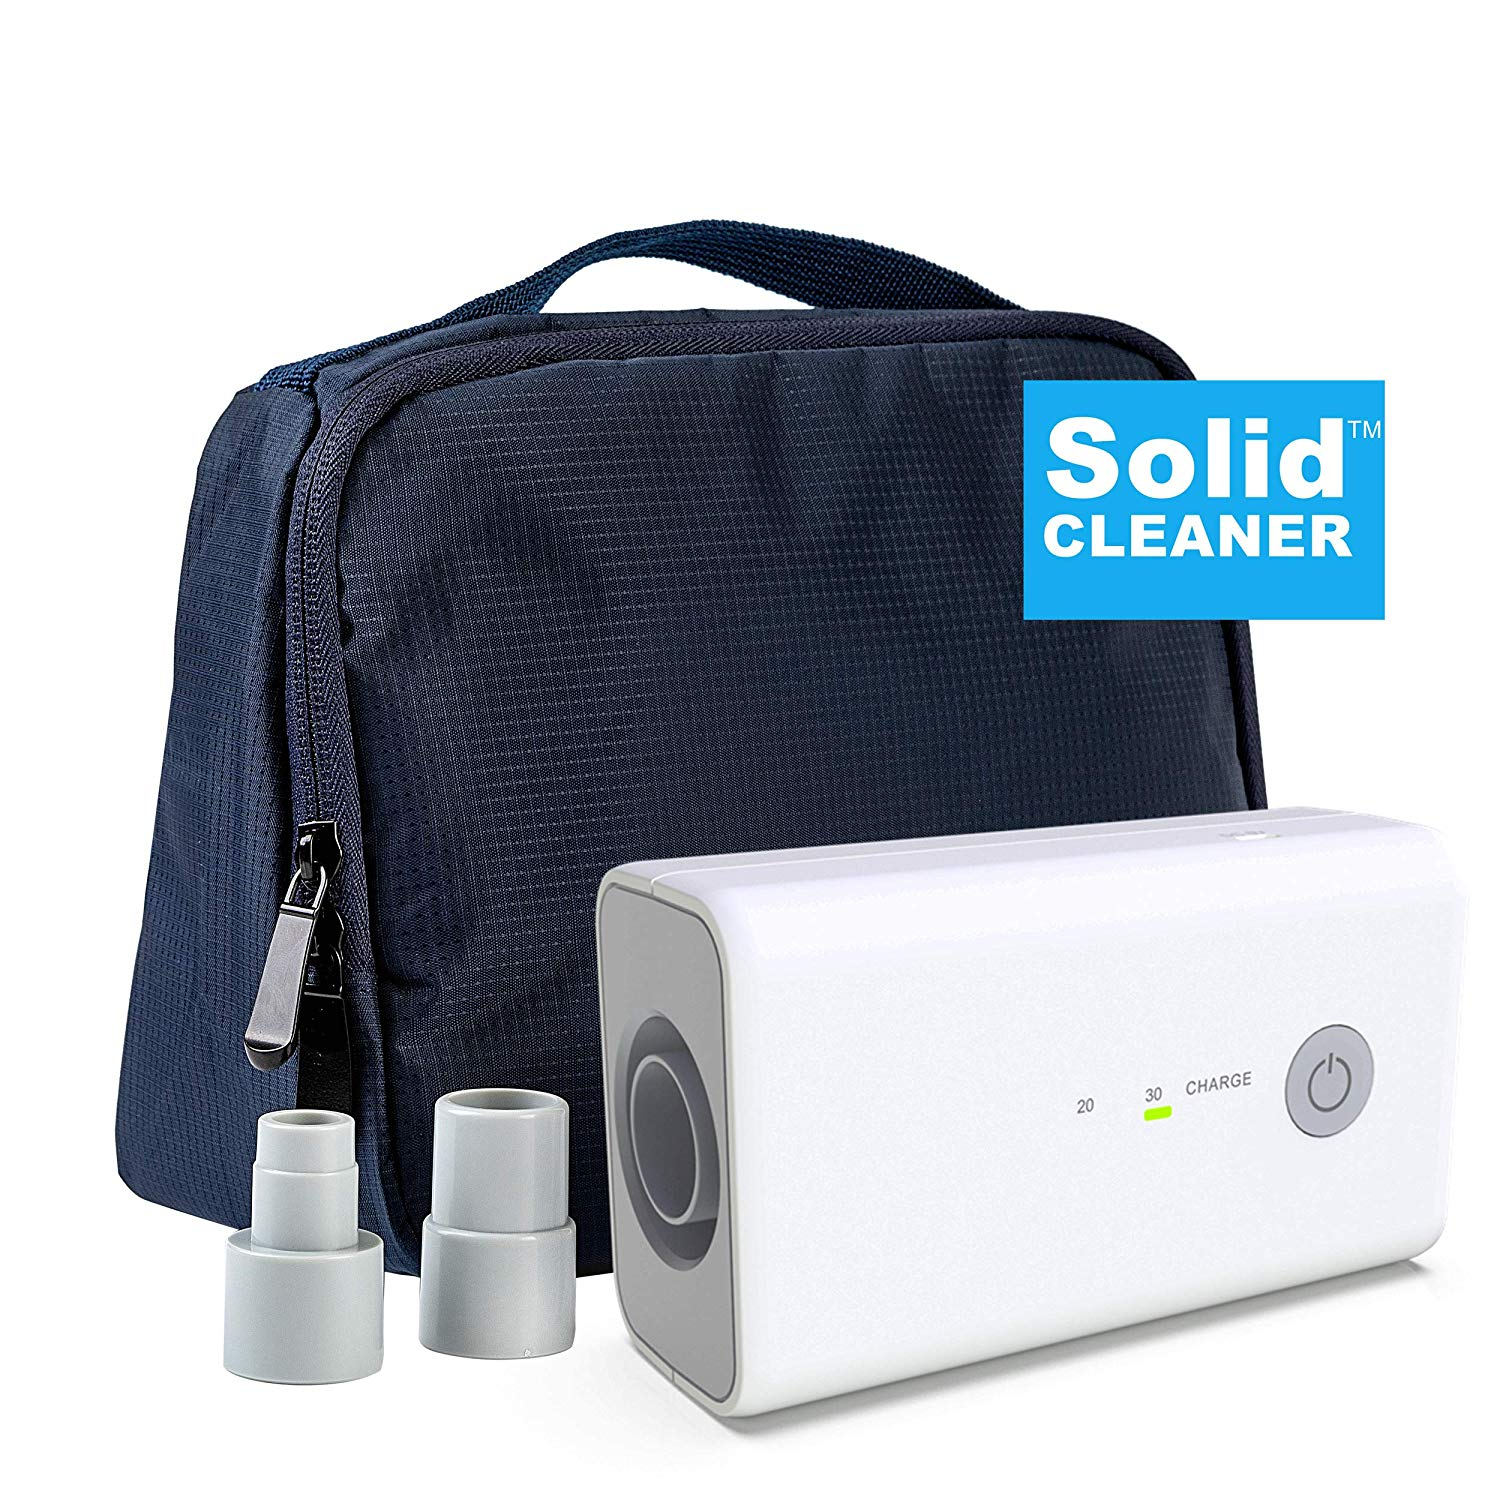 SolidCLEANER CPAP Cleaner Reviews by www.snoremagazine.com